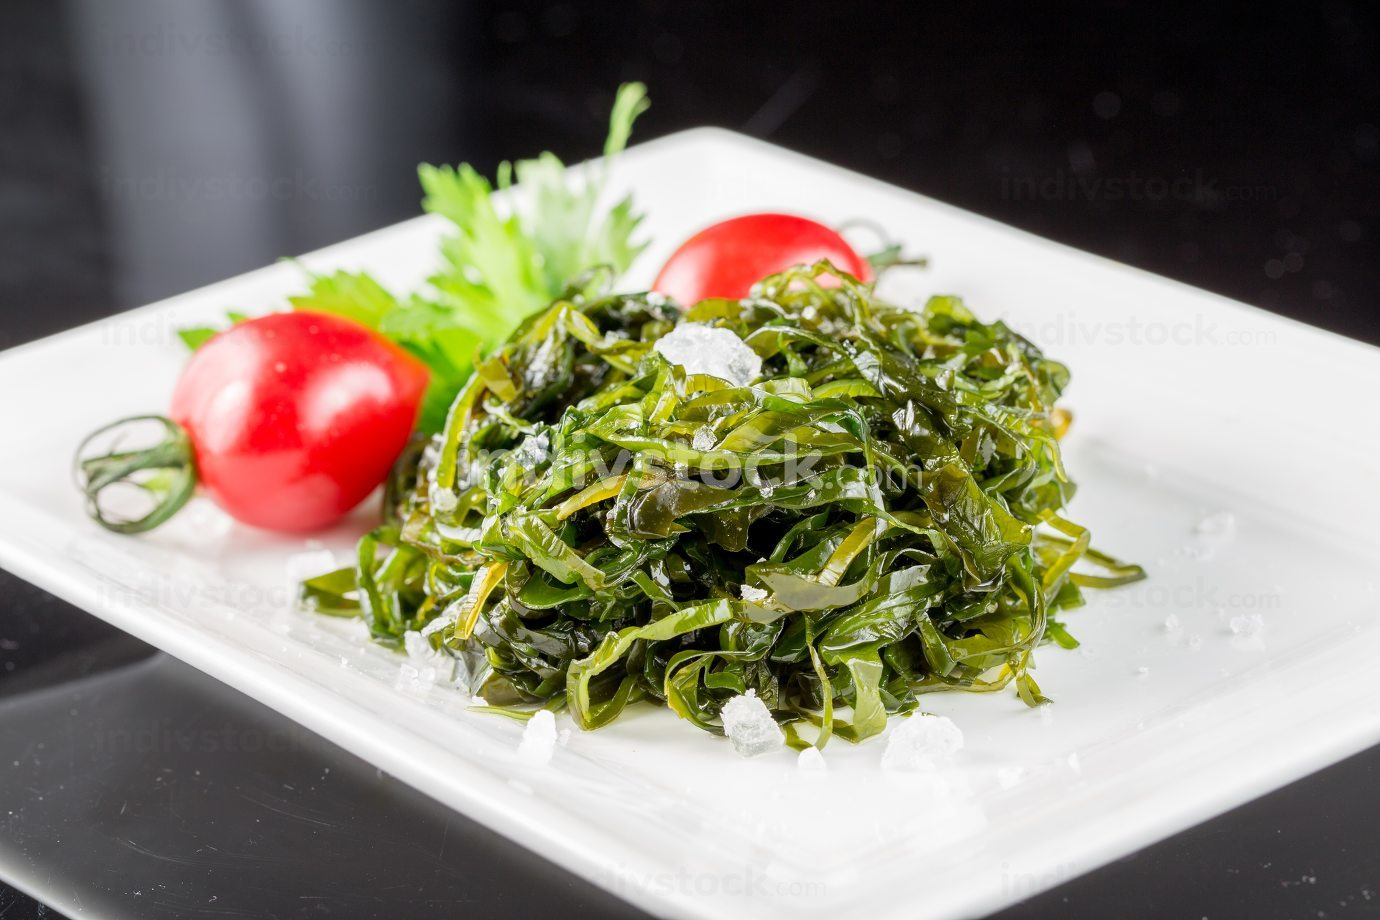 Braised Salad herb and sea cabbage Chinese cuisine.